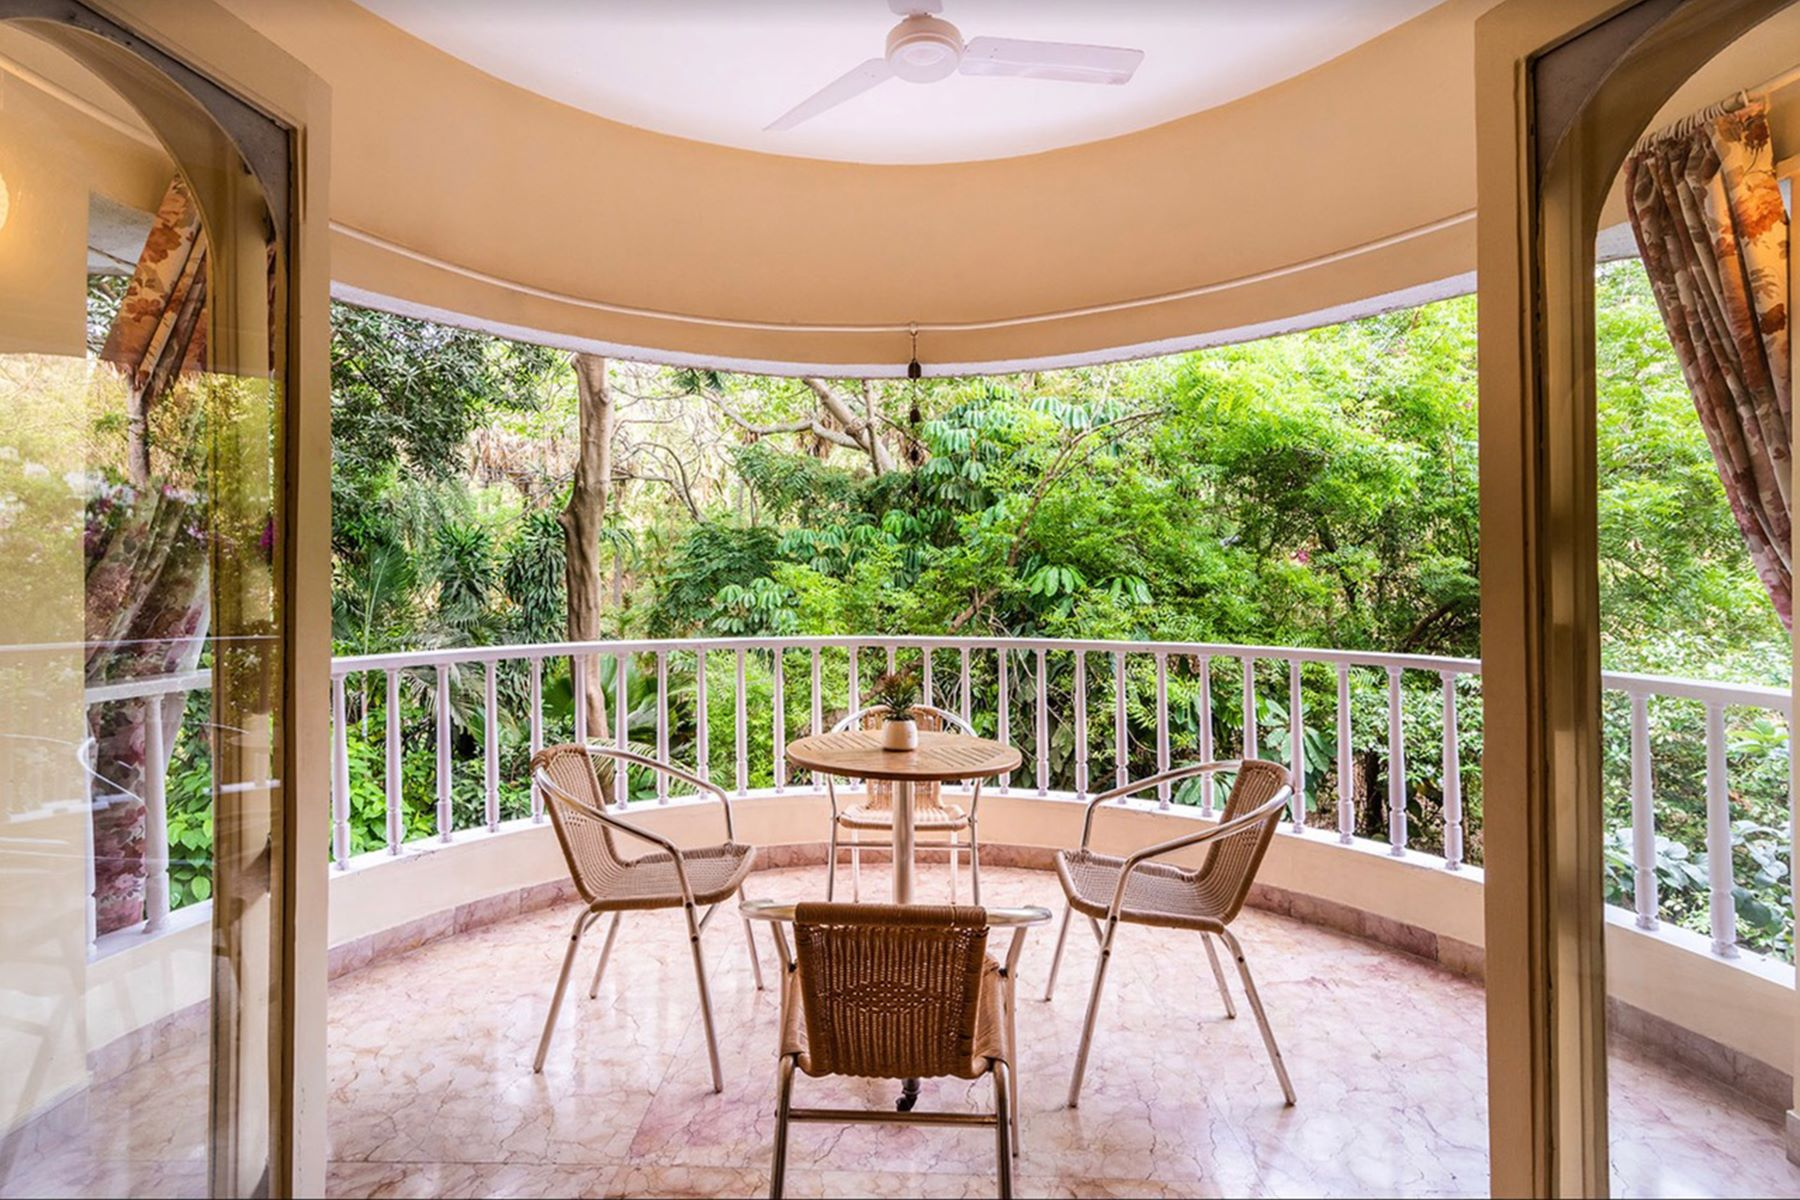 Townhouse for Sale at Mumbai- Grand Townhouse Grand Townhouse, Kemps Corner Mumbai, Maharashtra 400036 India